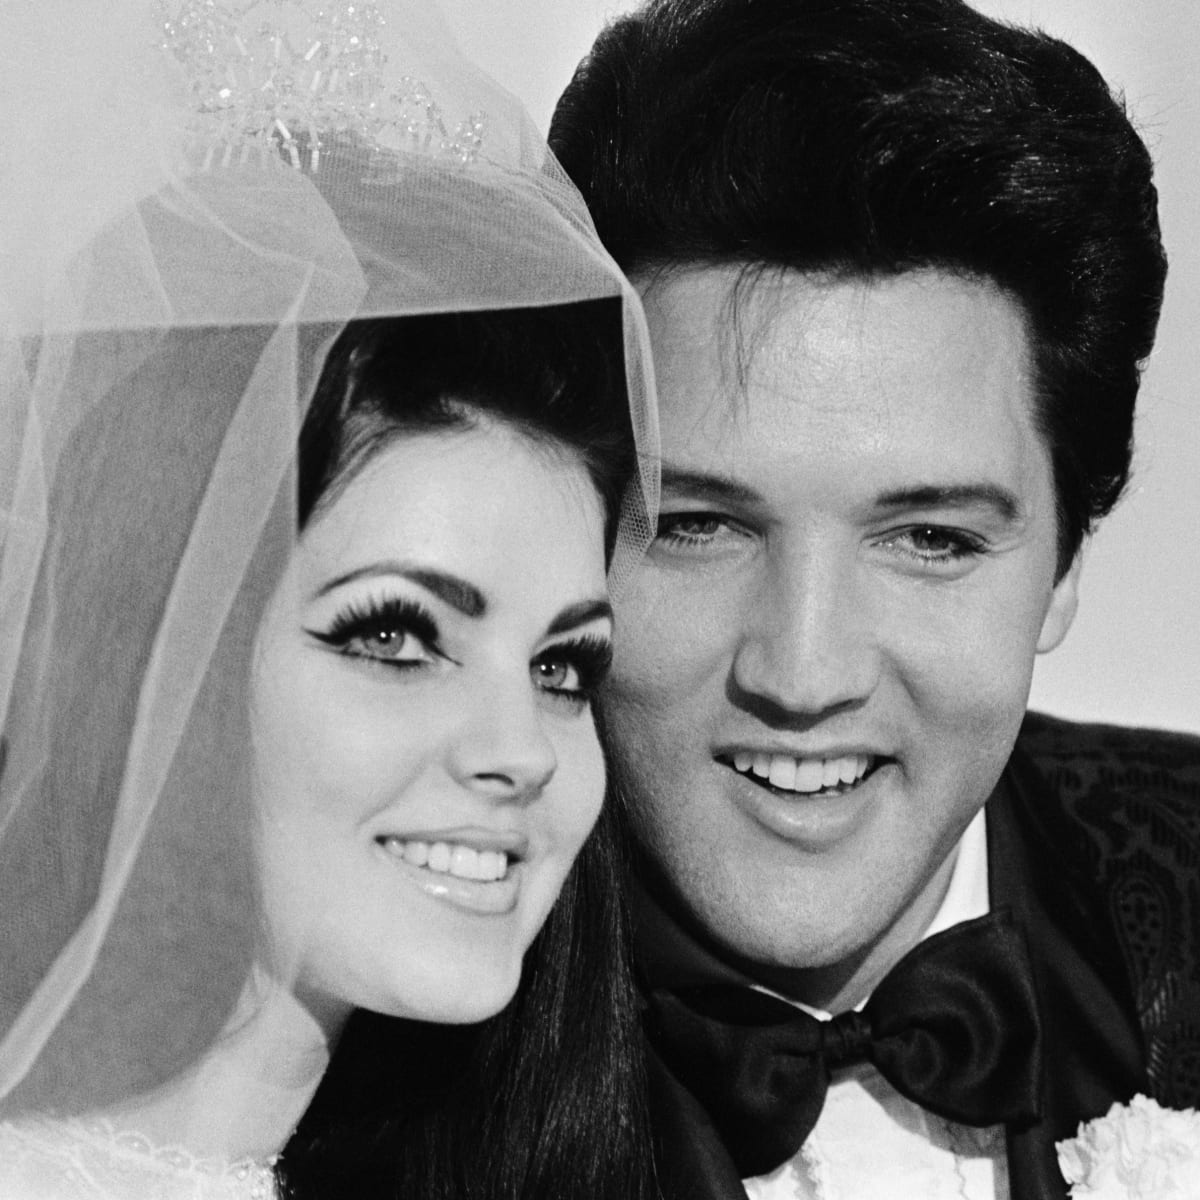 Elvis Felt Pressured To Marry Priscilla And Trained Her To